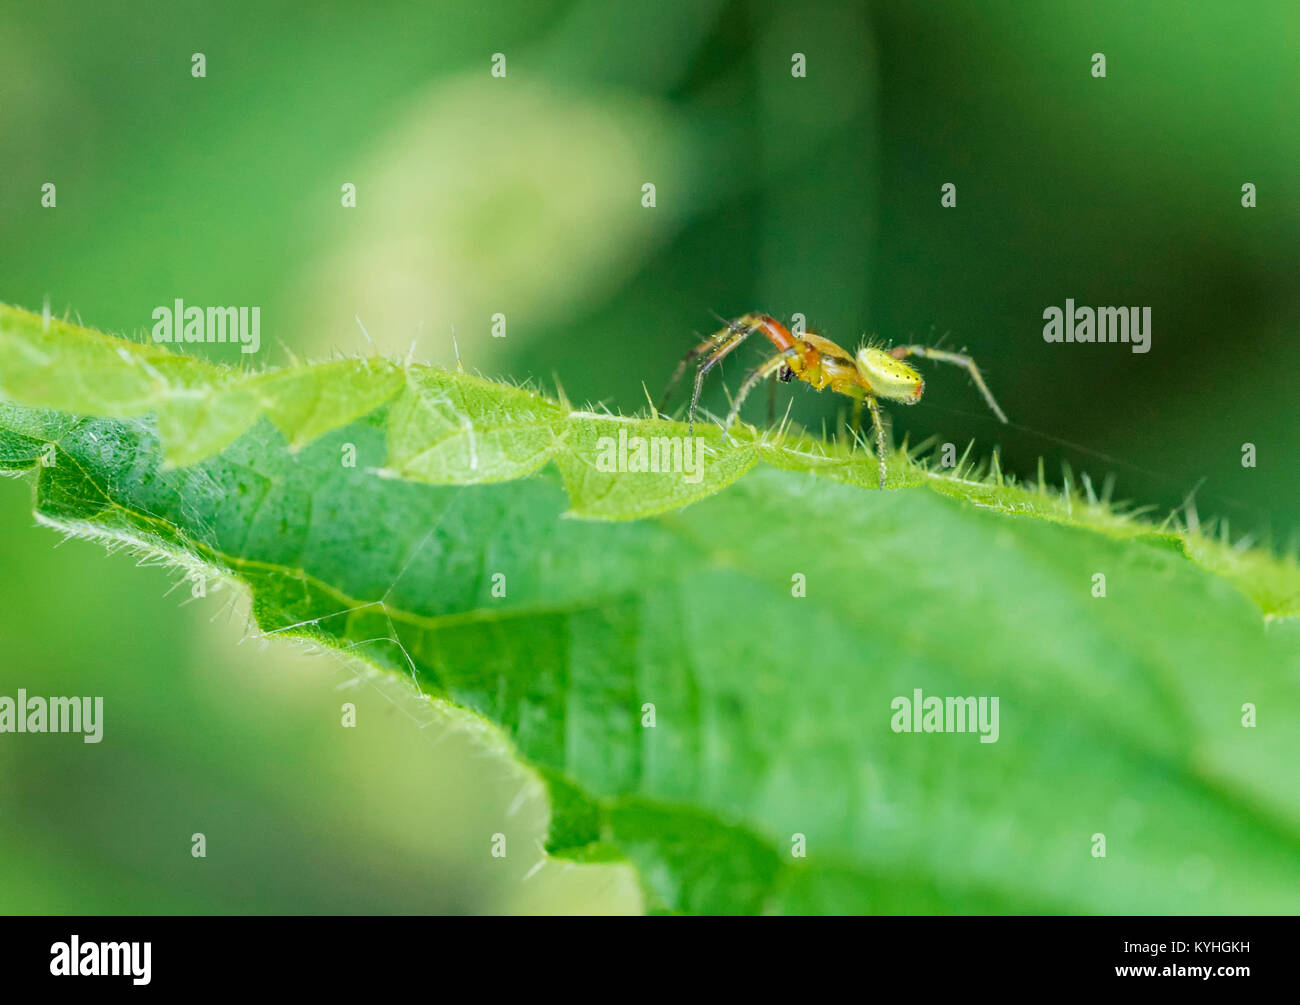 sideways shot of acucumber green spider on green leaf - Stock Image